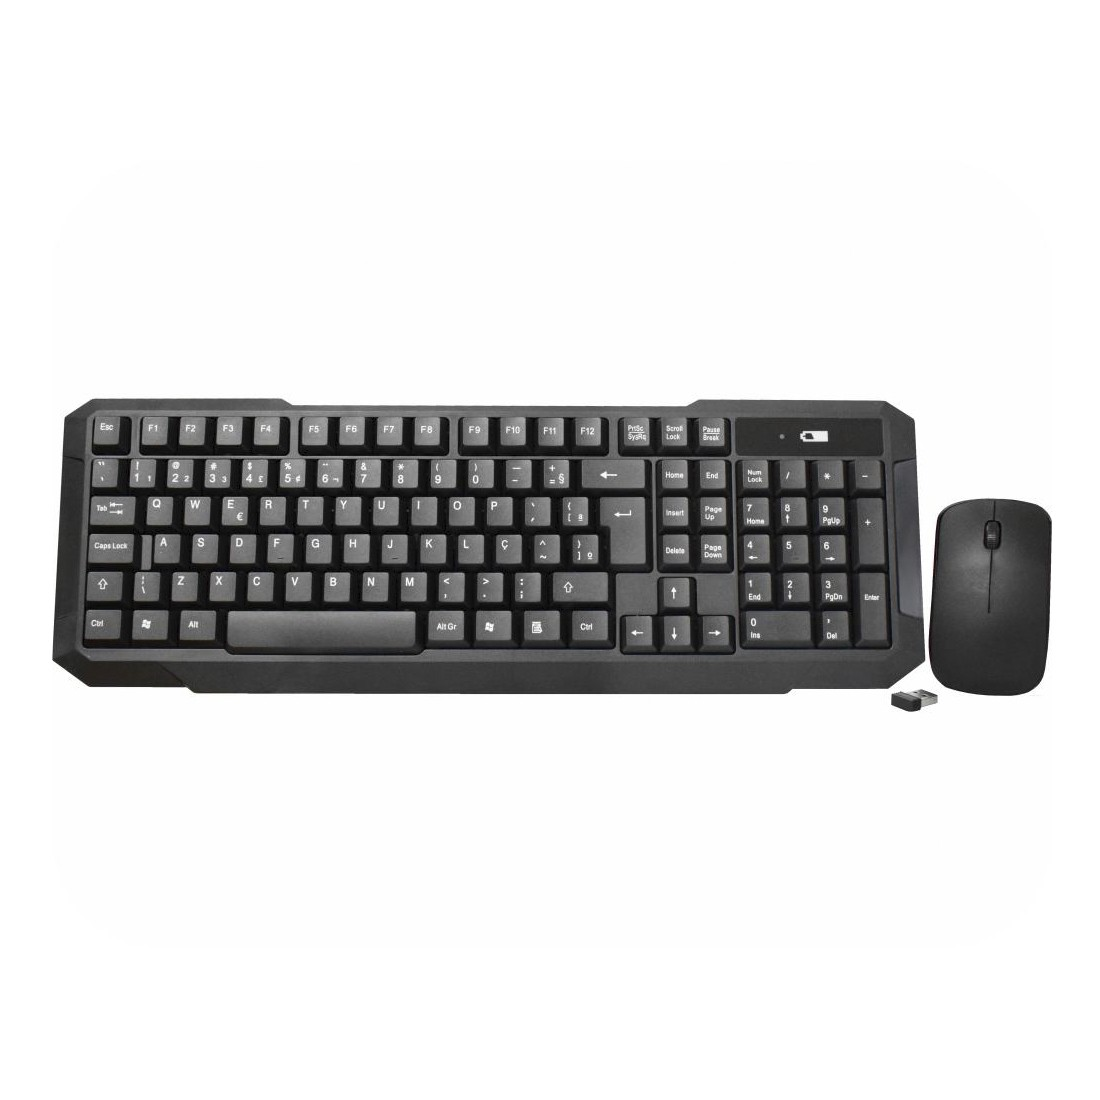 KIT Teclado e Mouse Wireless Sem Fio KA-S228 MA-B333 Kmex 2.4Ghz